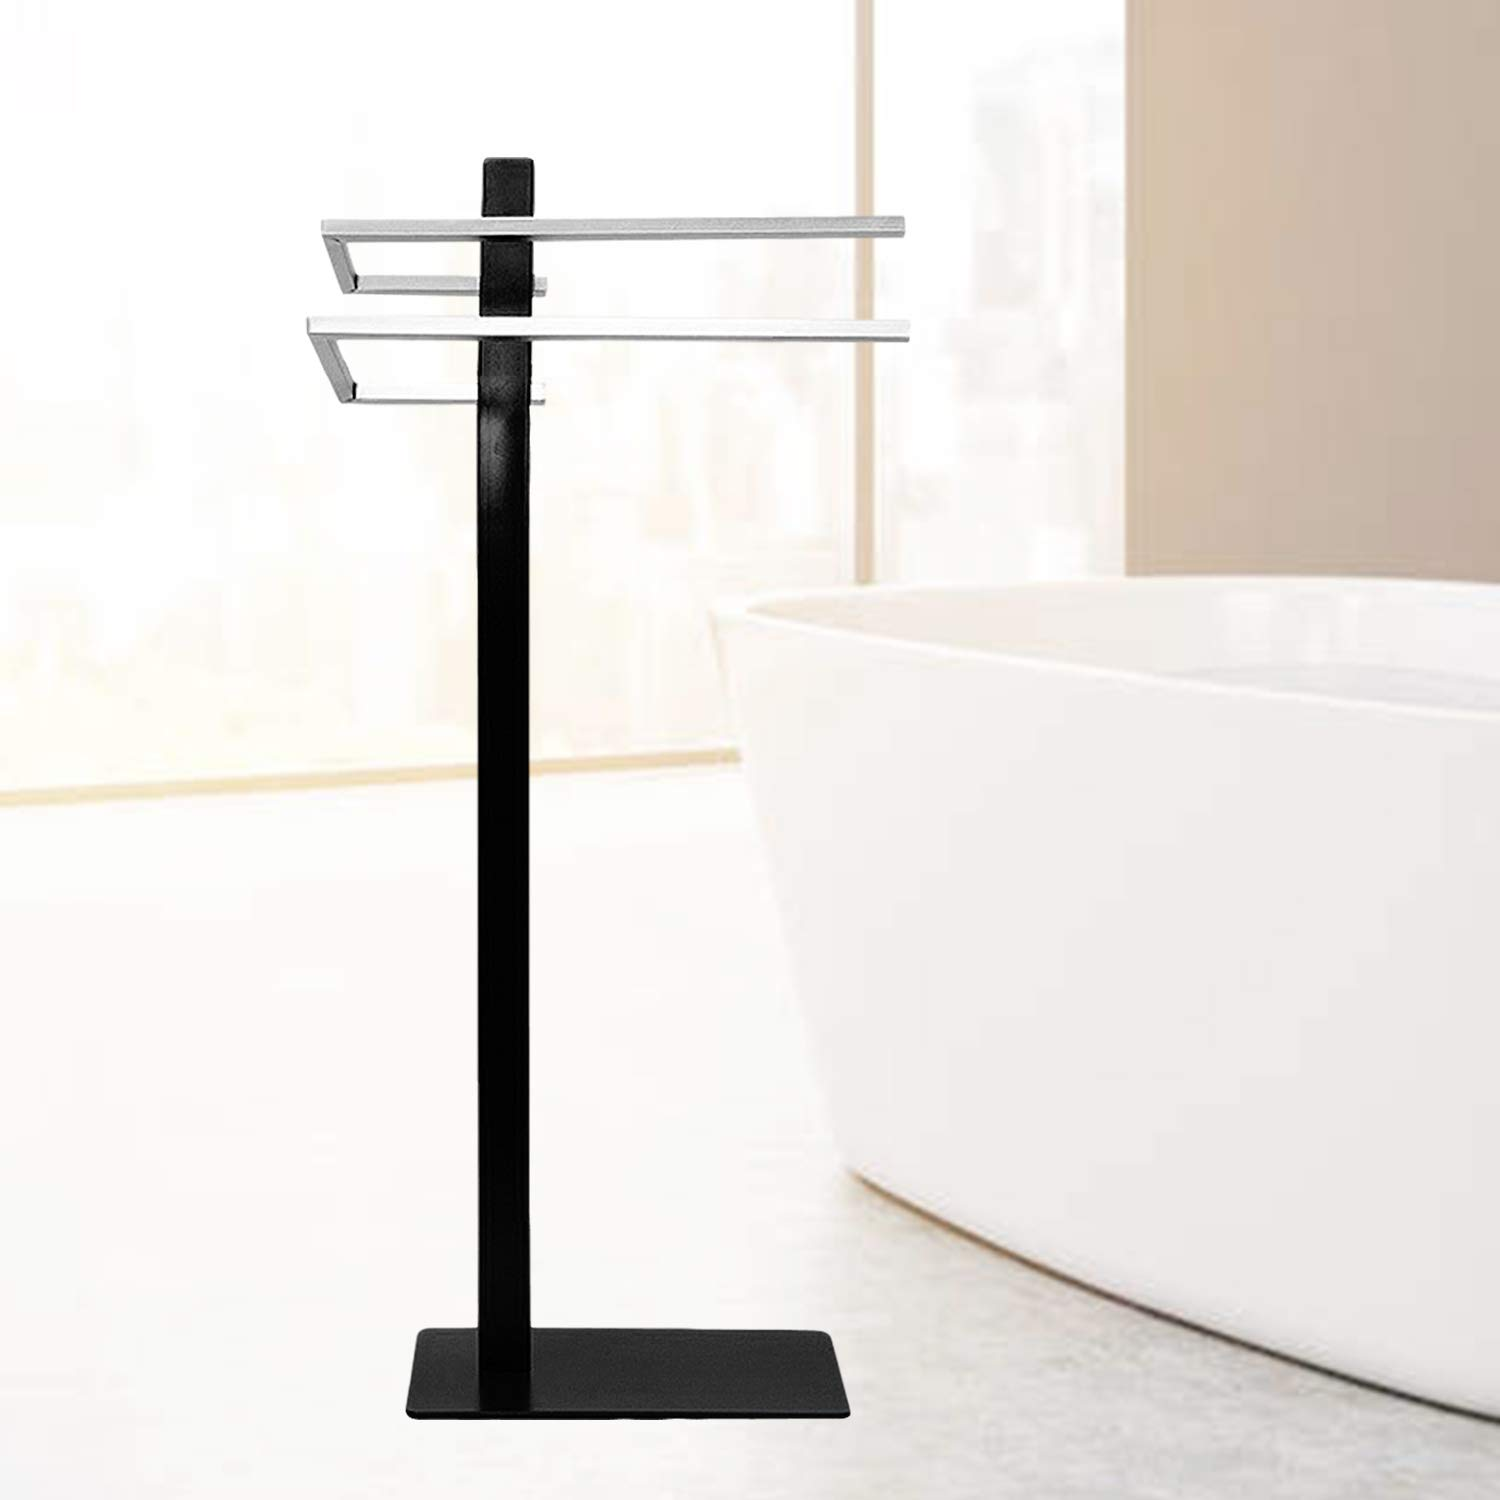 FOYUEE Free Standing Towel Rack for Bathroom Outdoor Pool Hand Beach Bath Shower Towels Stand Holder Metal Black by FOYUEE